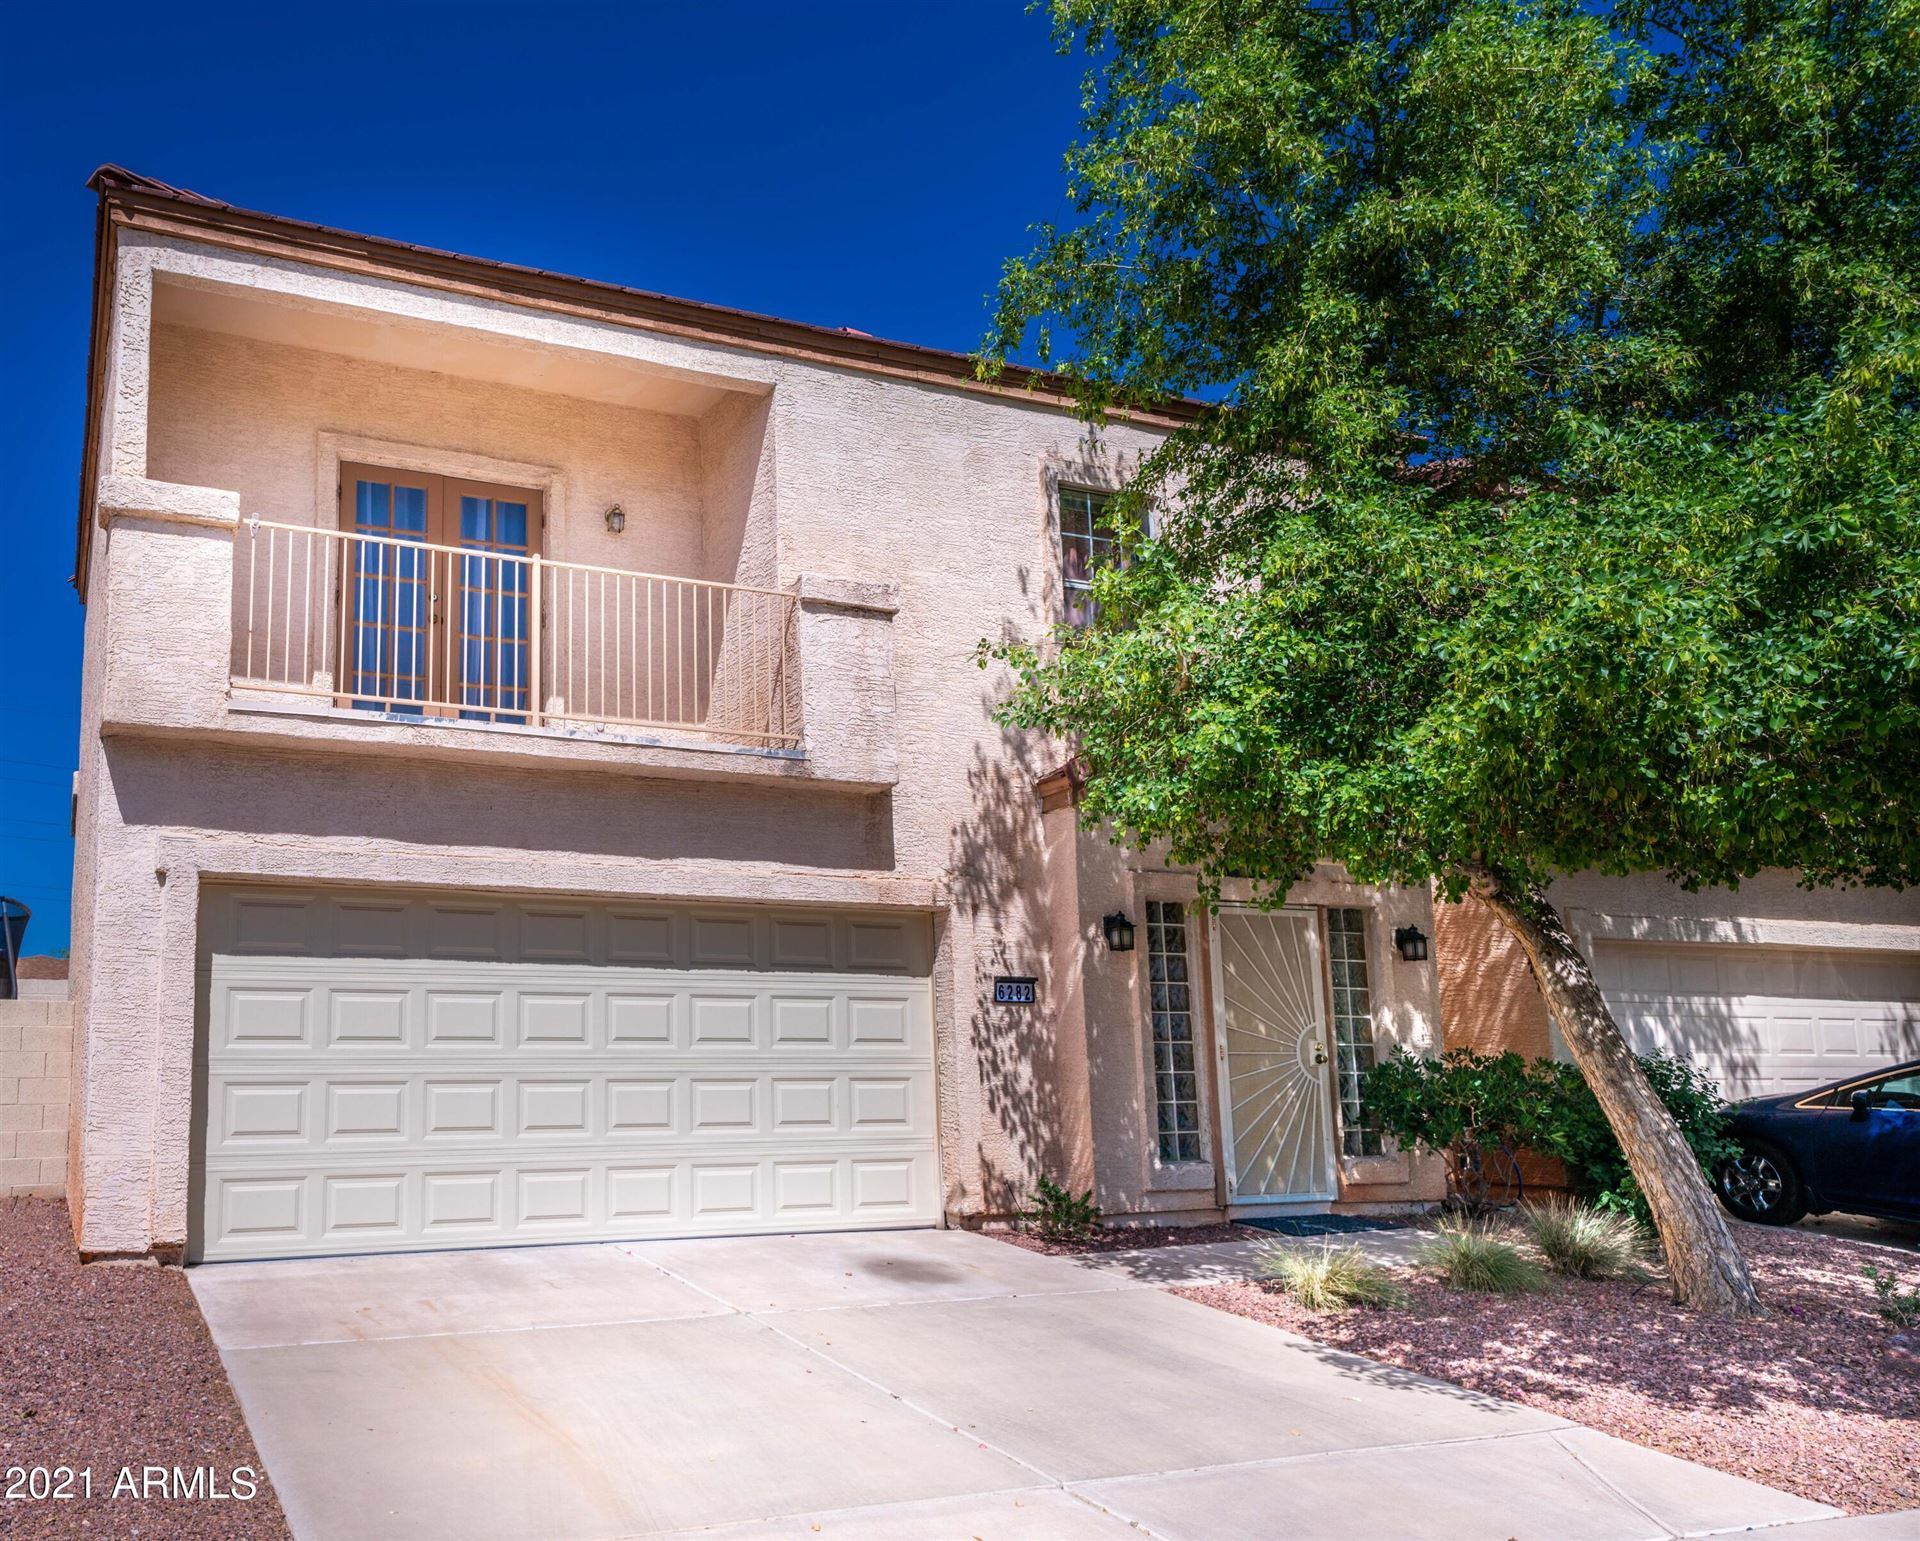 6282 S COLONIAL Way, Tempe, AZ 85283 - MLS#: 6231612